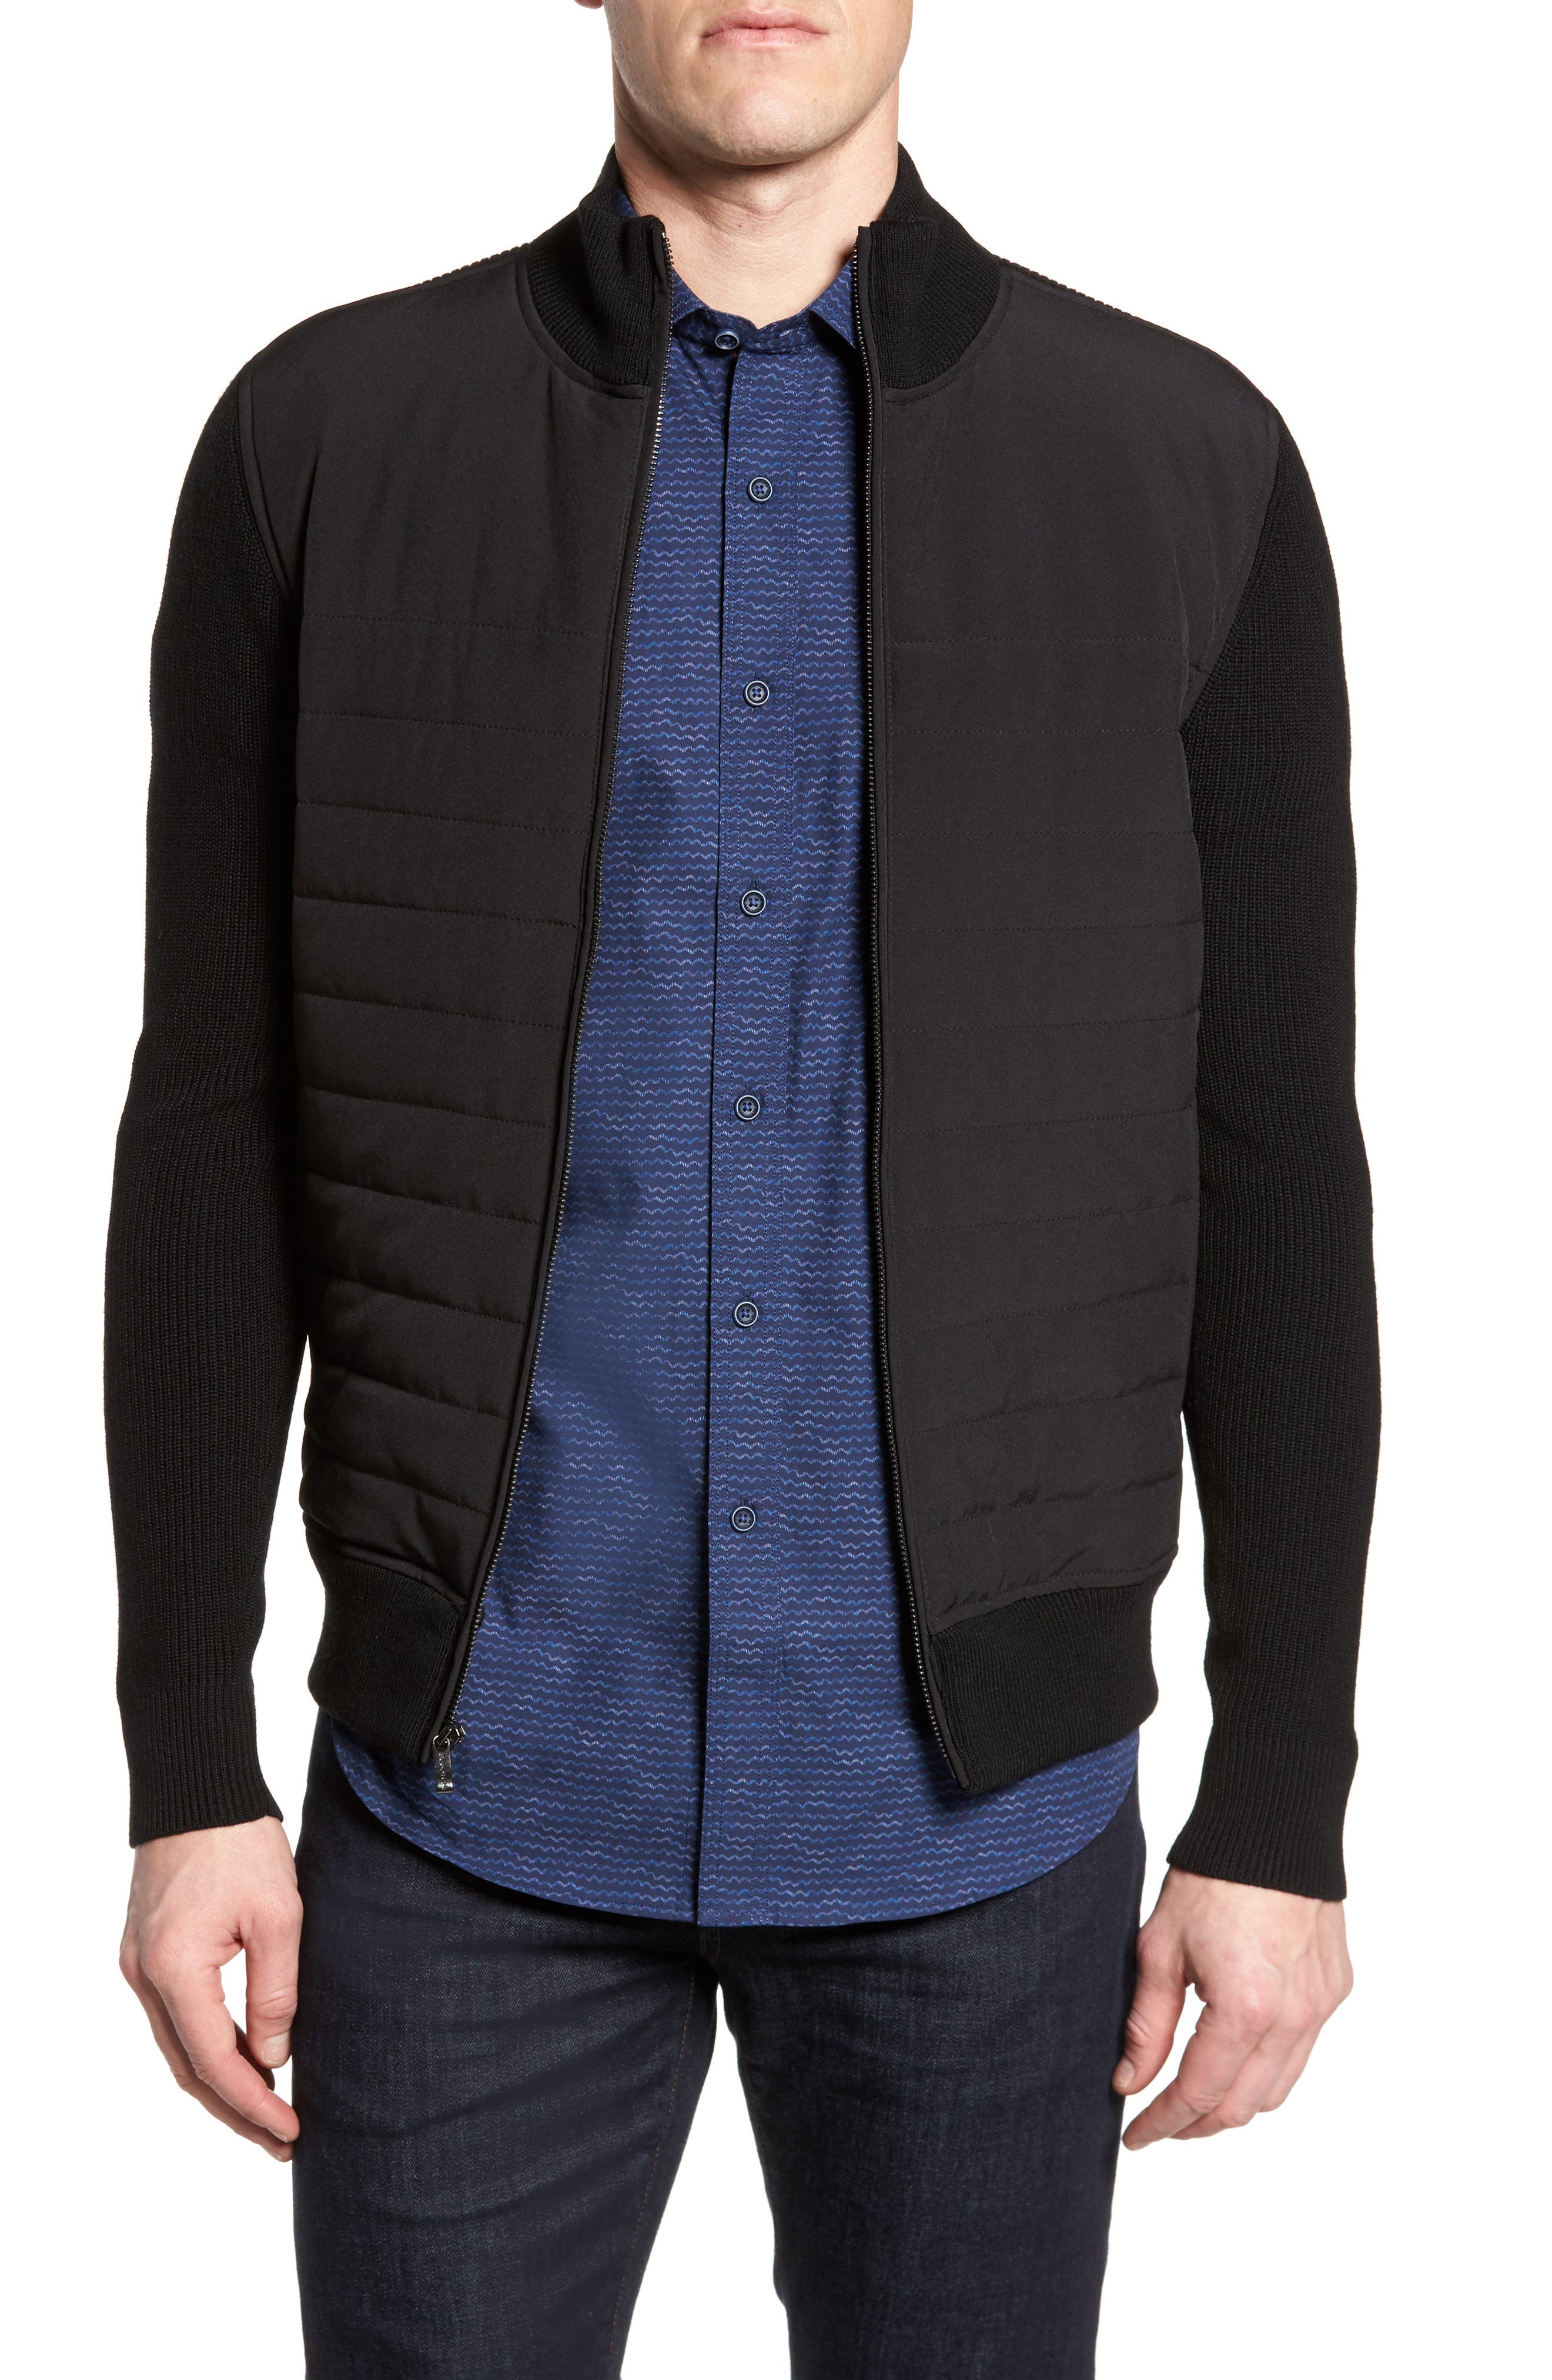 Quilted Front Wool Zip Front Sweater Jacket,                             Main thumbnail 1, color,                             Black